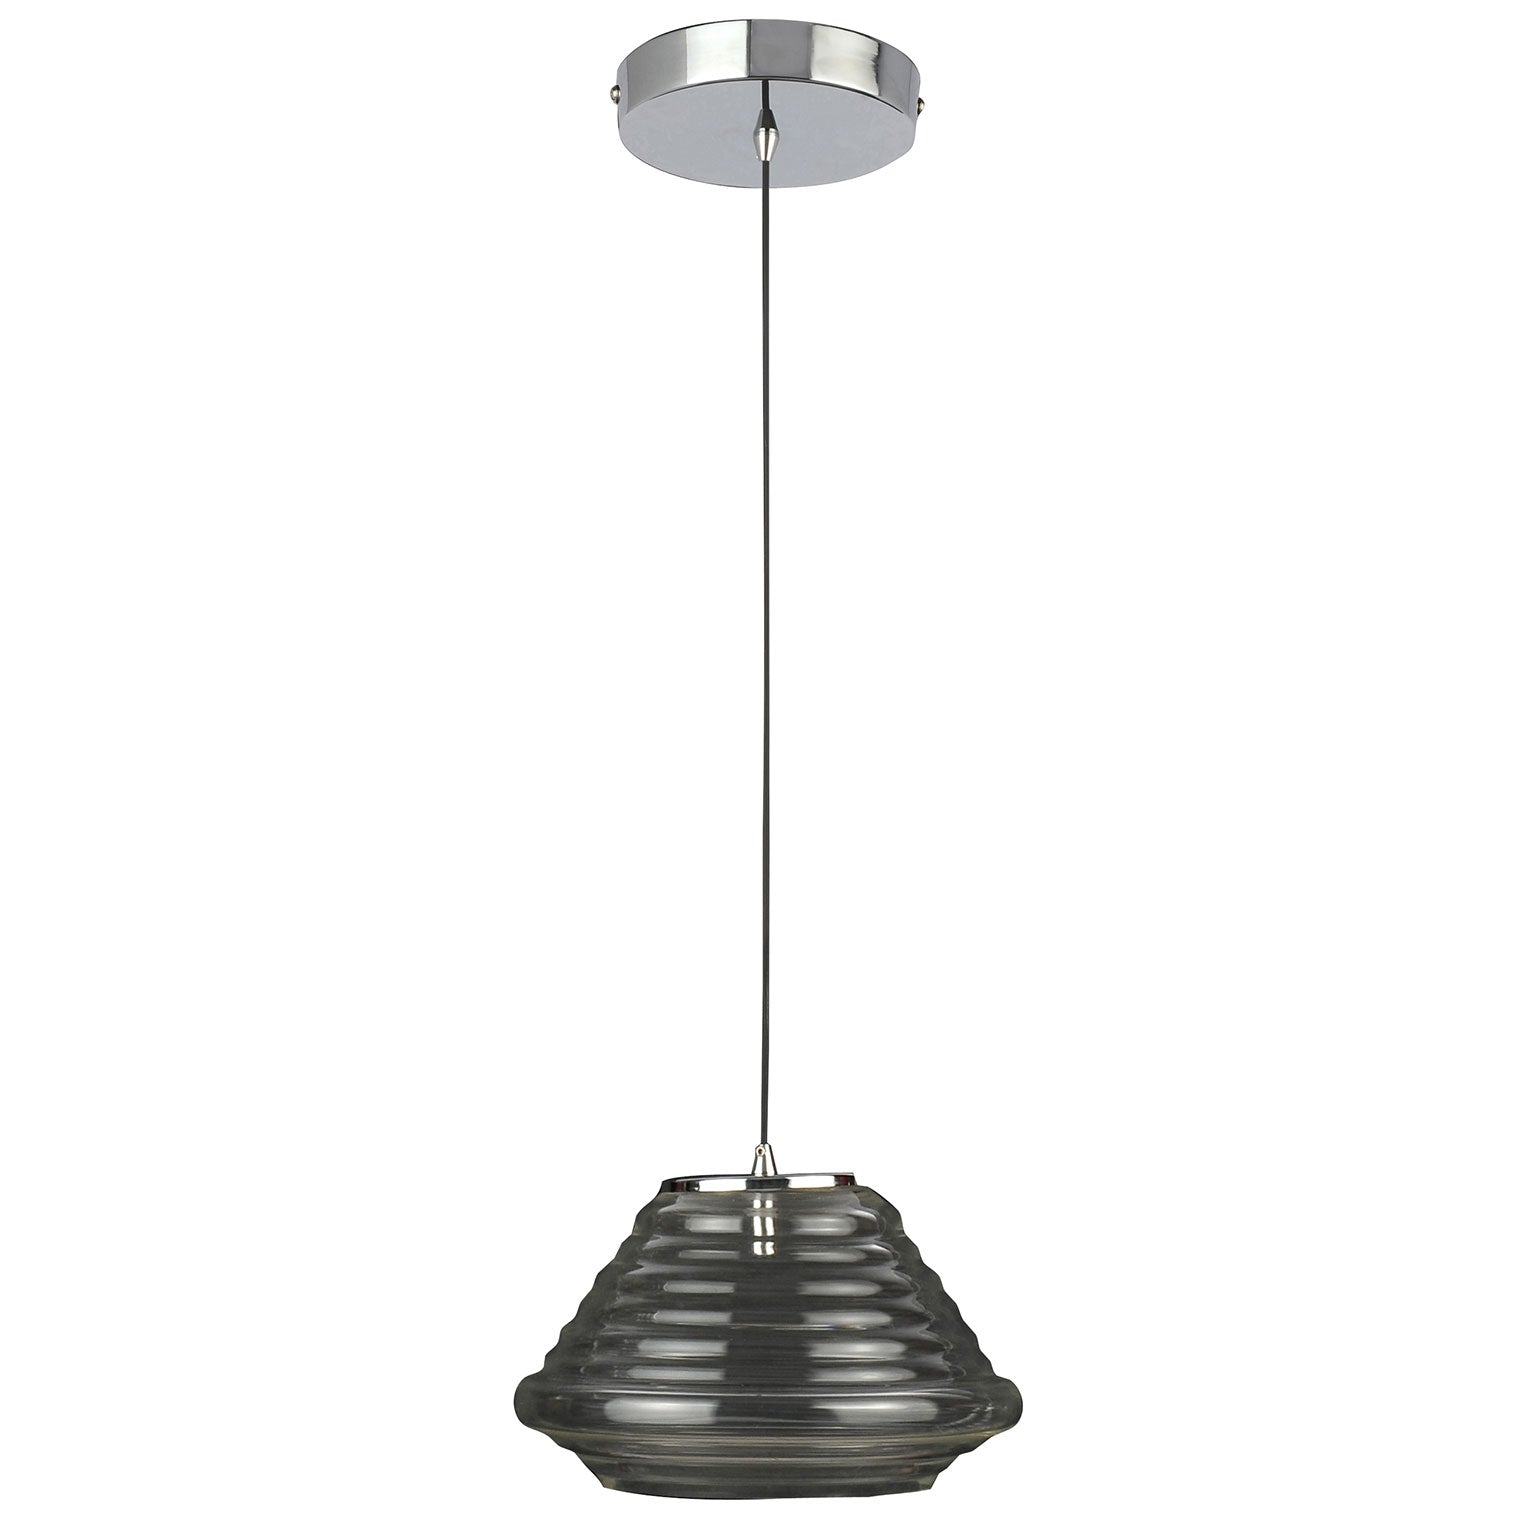 Suspension Flood en métal coloris chromé ondulé une ampoule - Lampe Deco